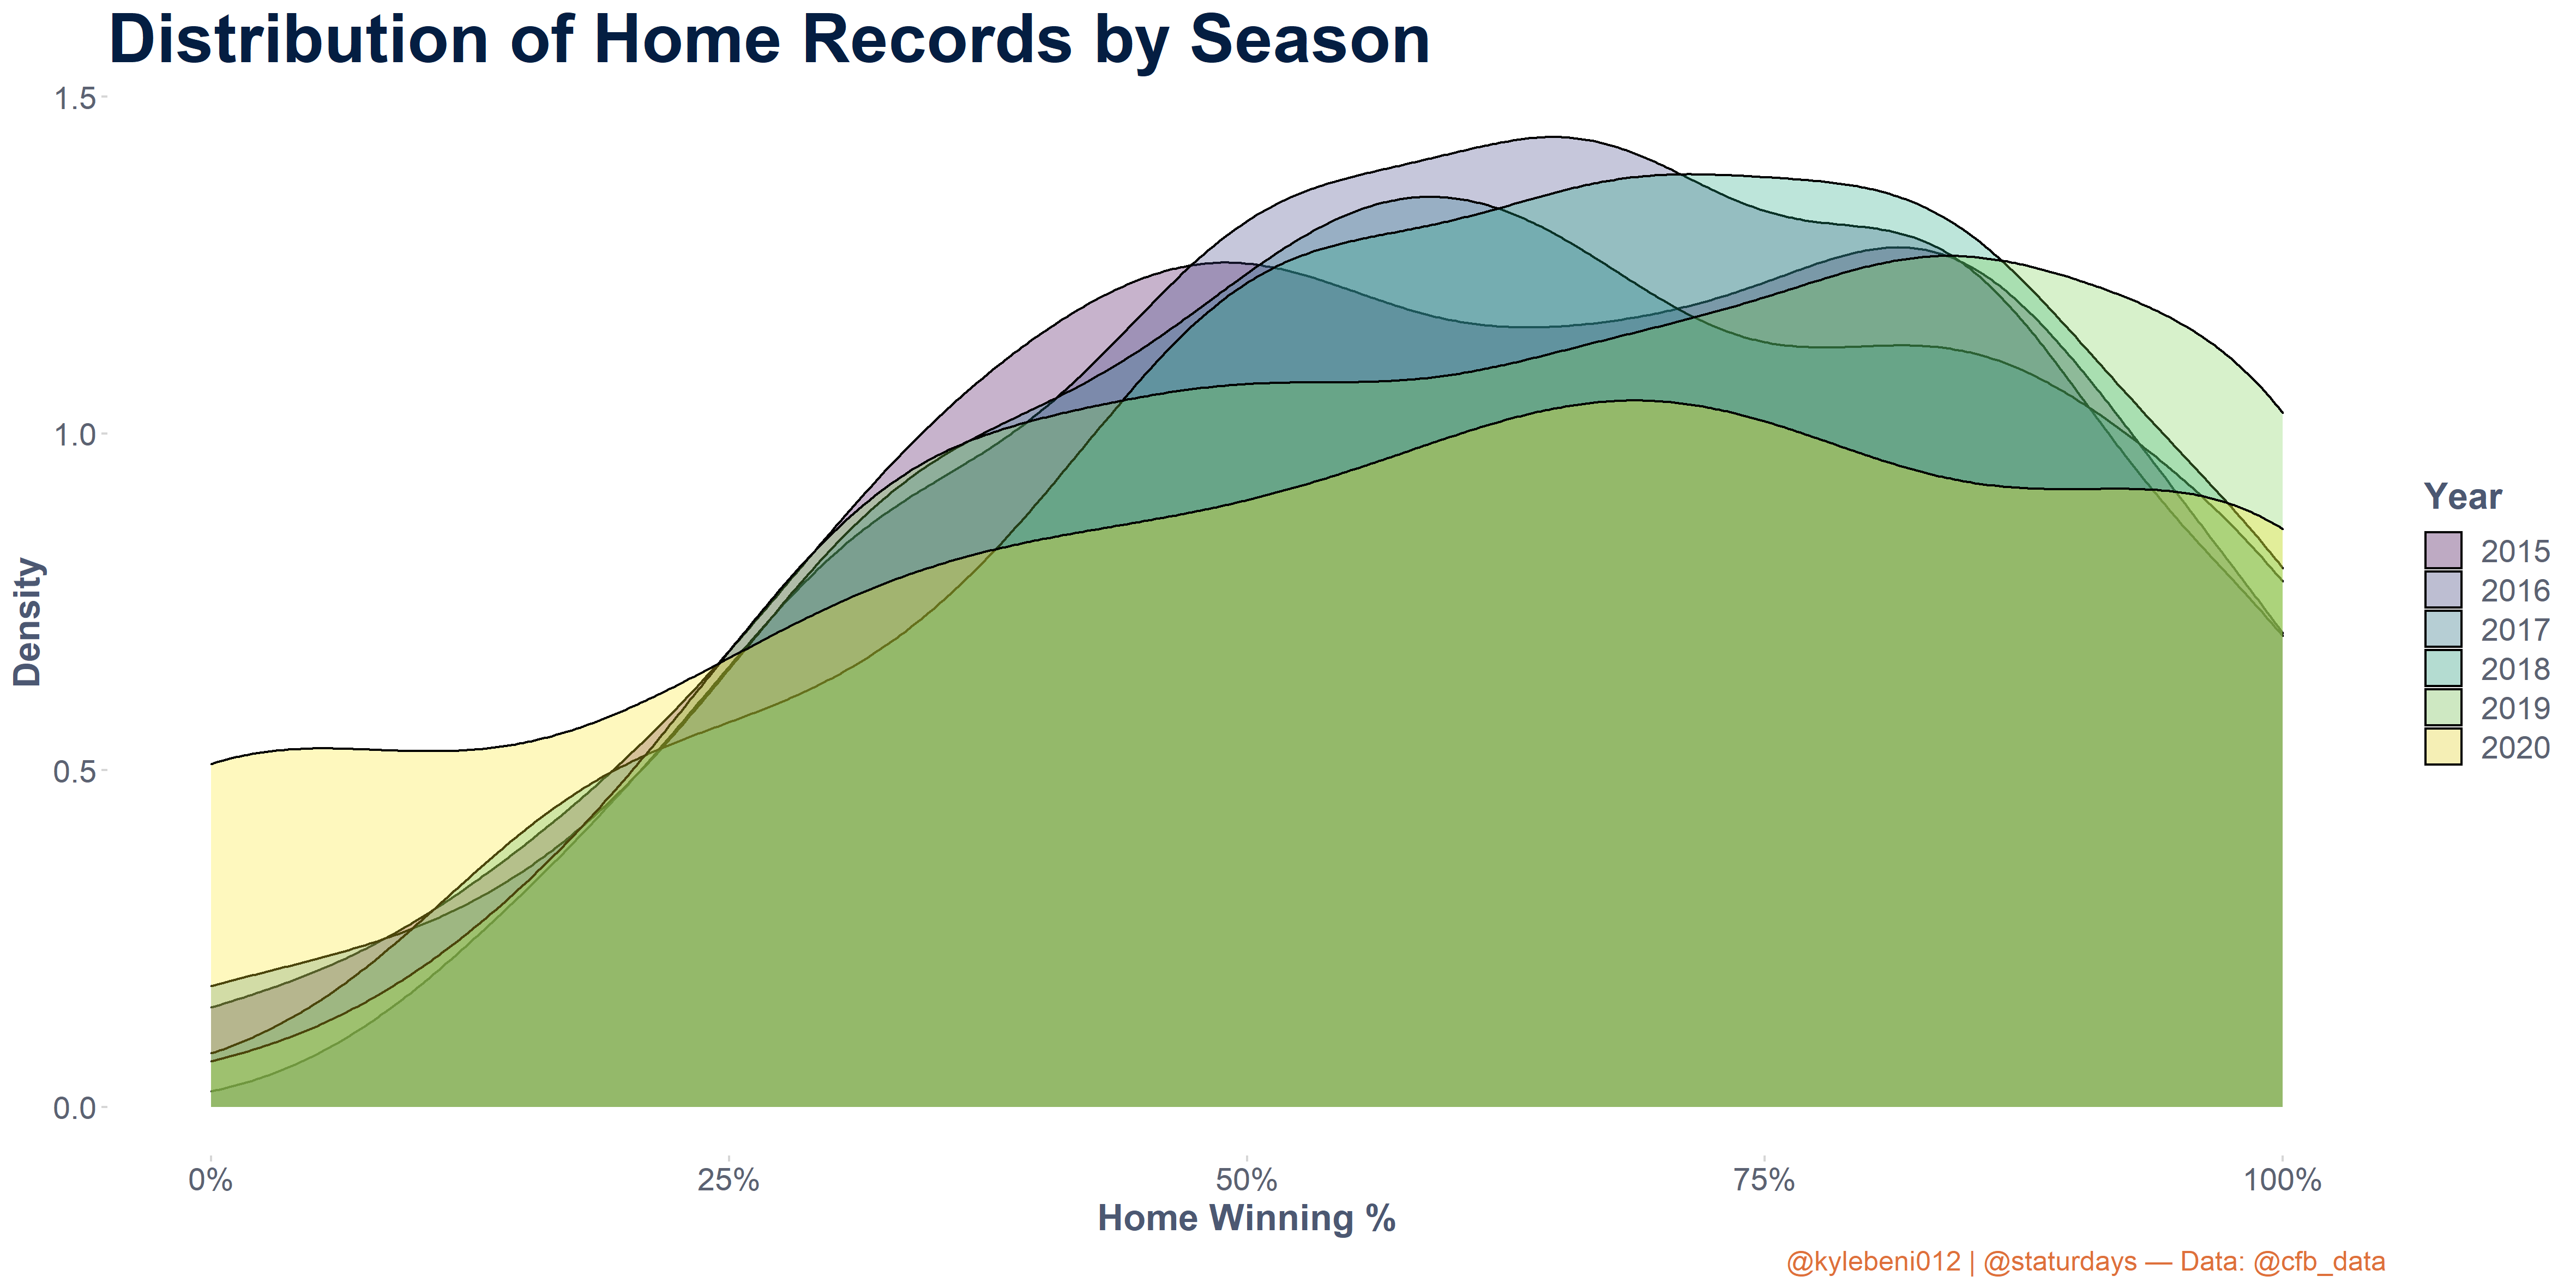 Density plot of home winning percentages in college football over the past six seasons. 2020 saw more teams with home records below 50%.